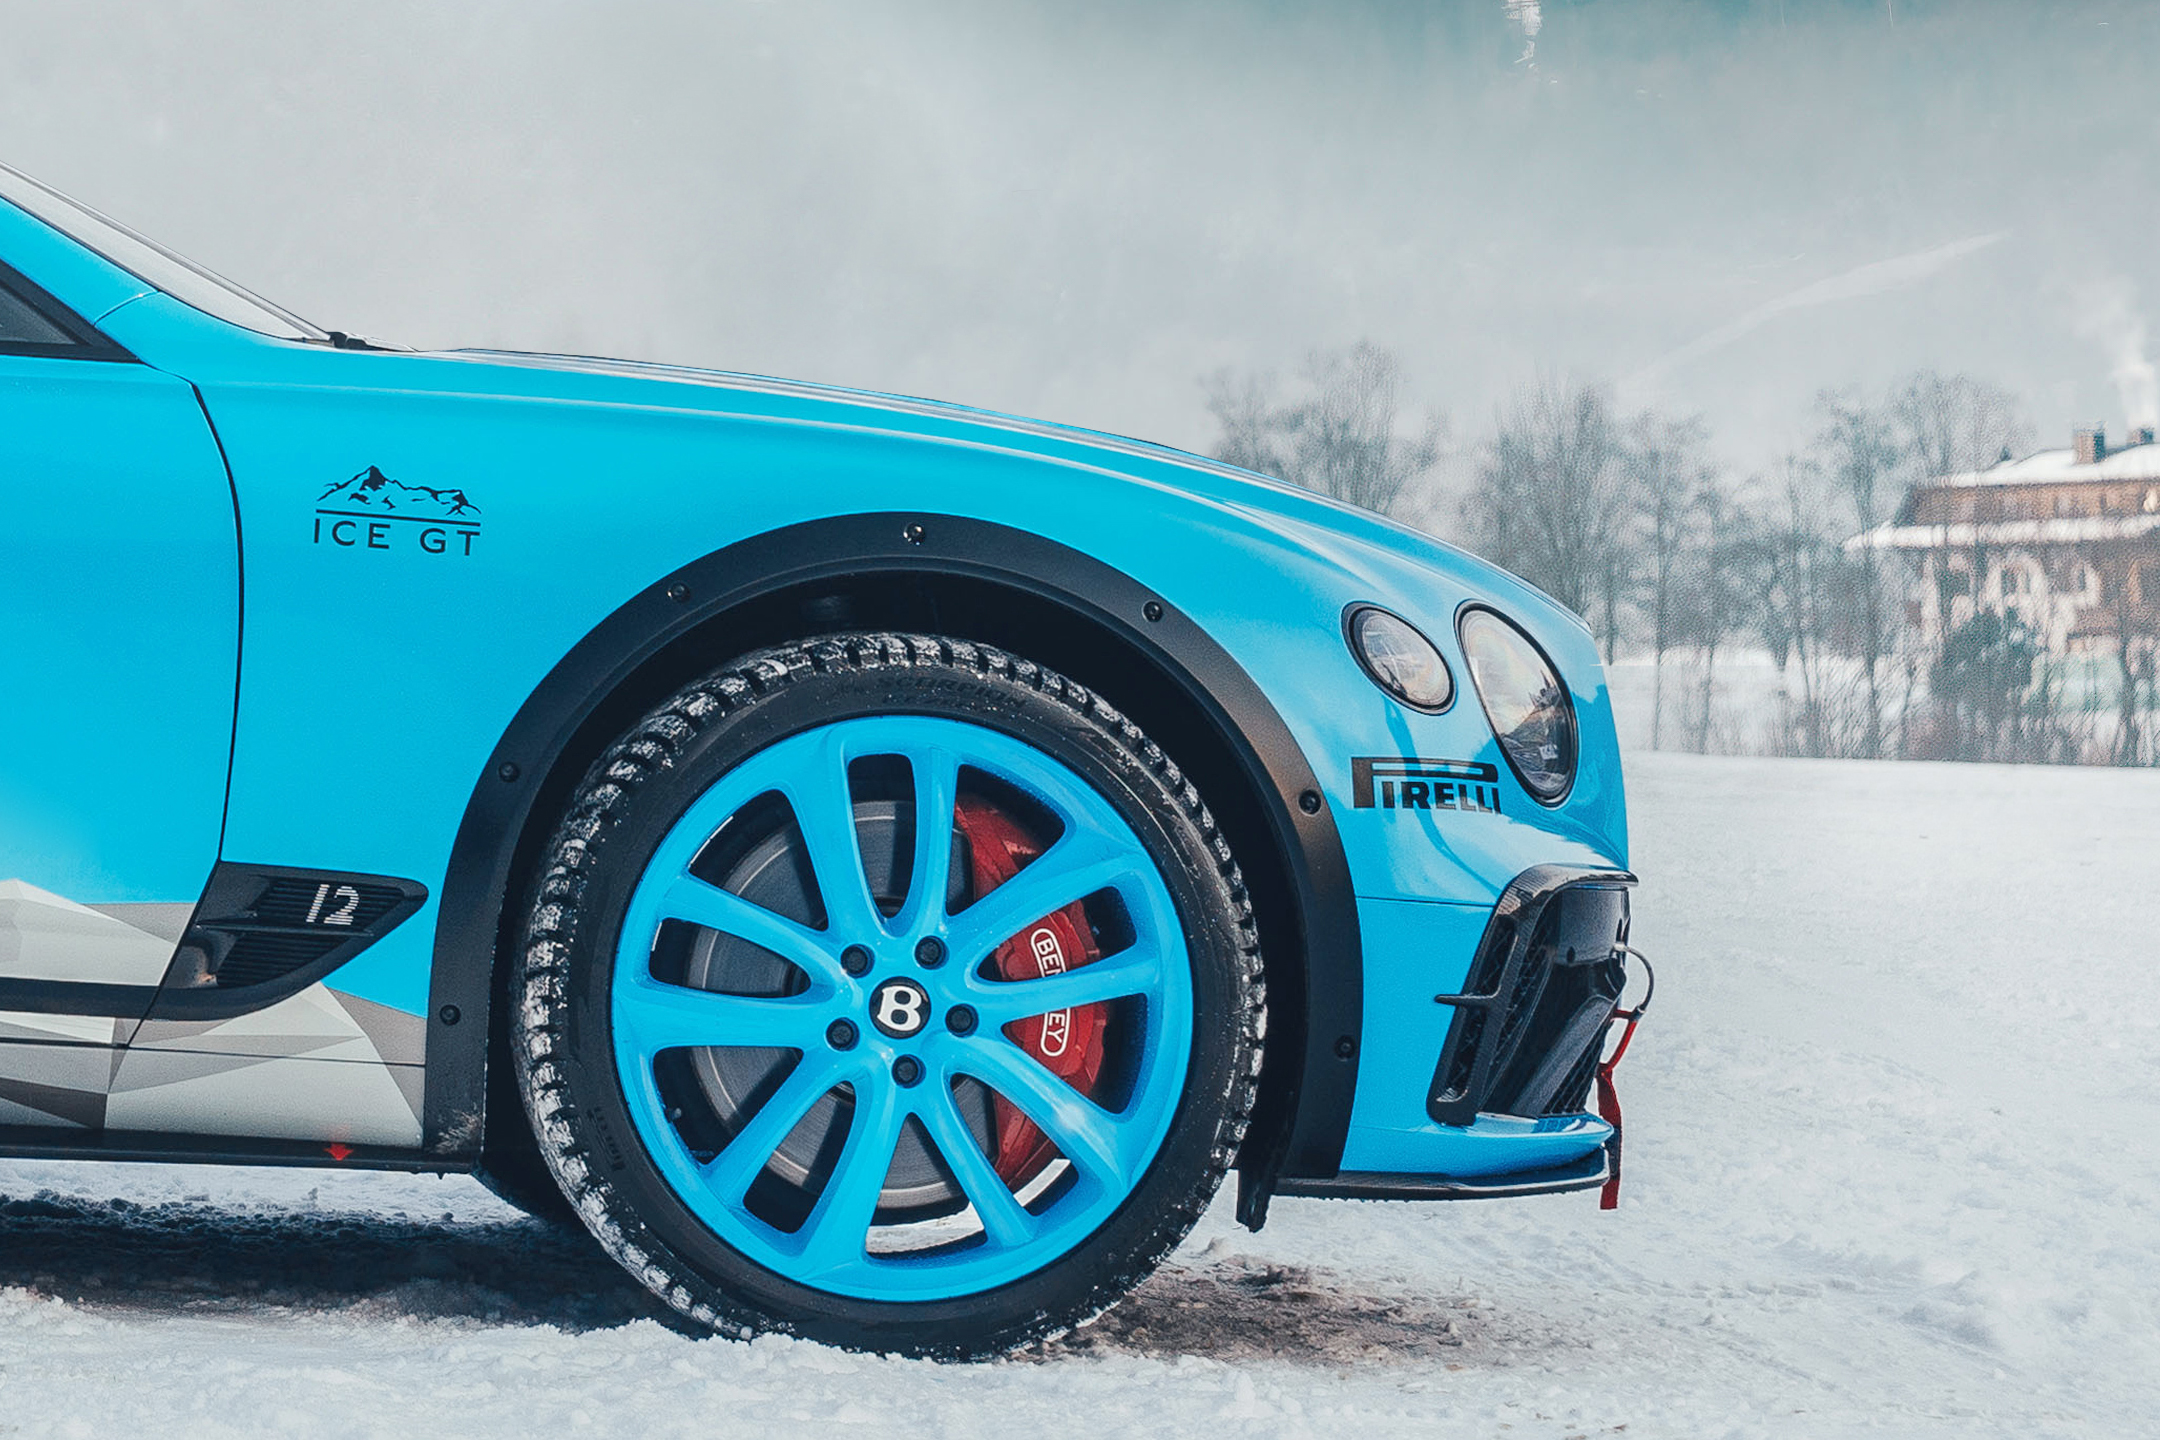 Bentley Continental GT Ice Race - 2020 - front wheel / jante avant